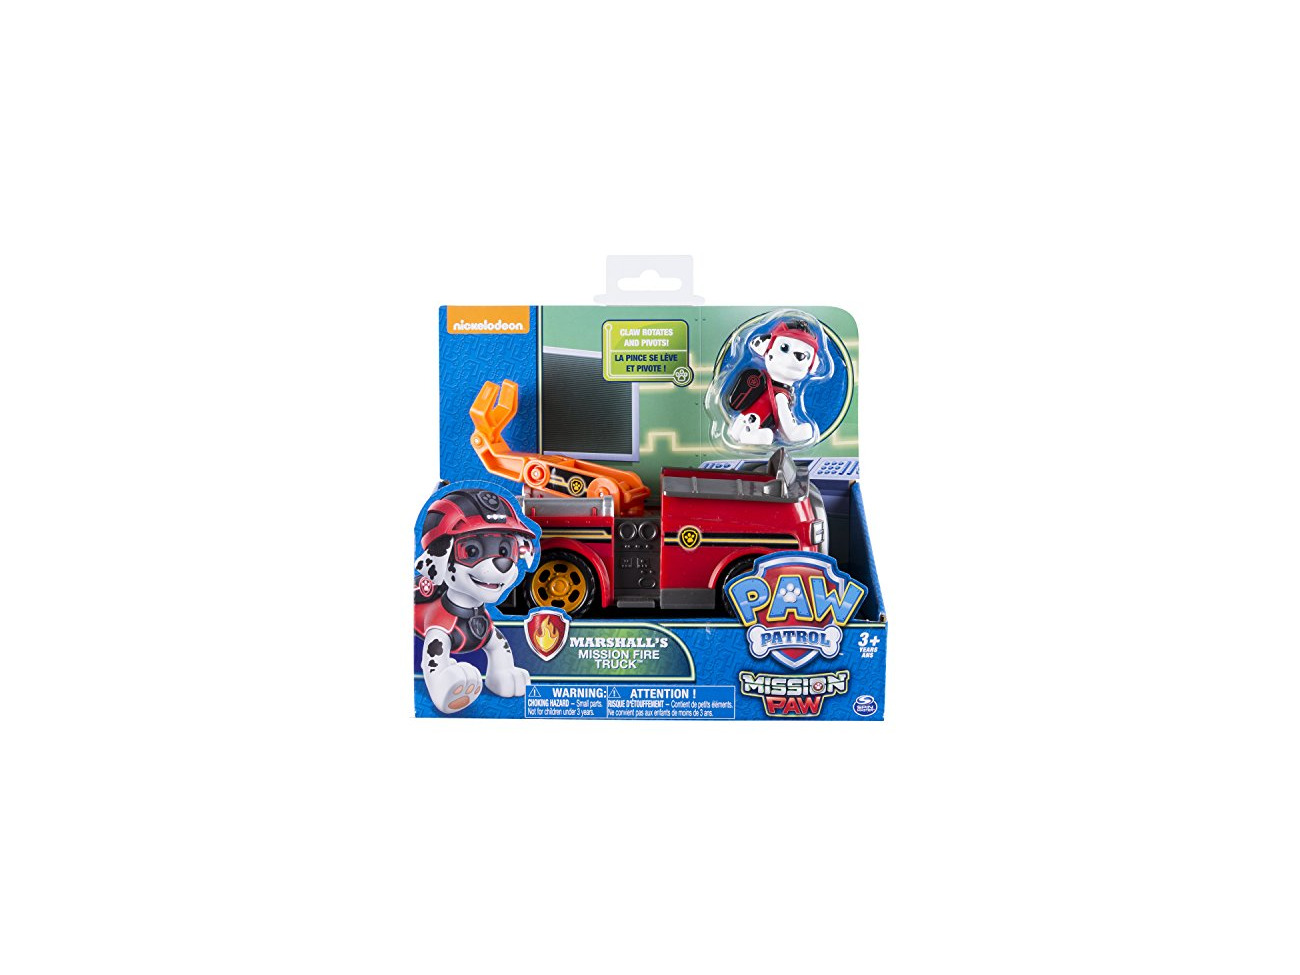 Paw Patrol 6037967 Paw Vehicle Marshalls Mission Fire Truck